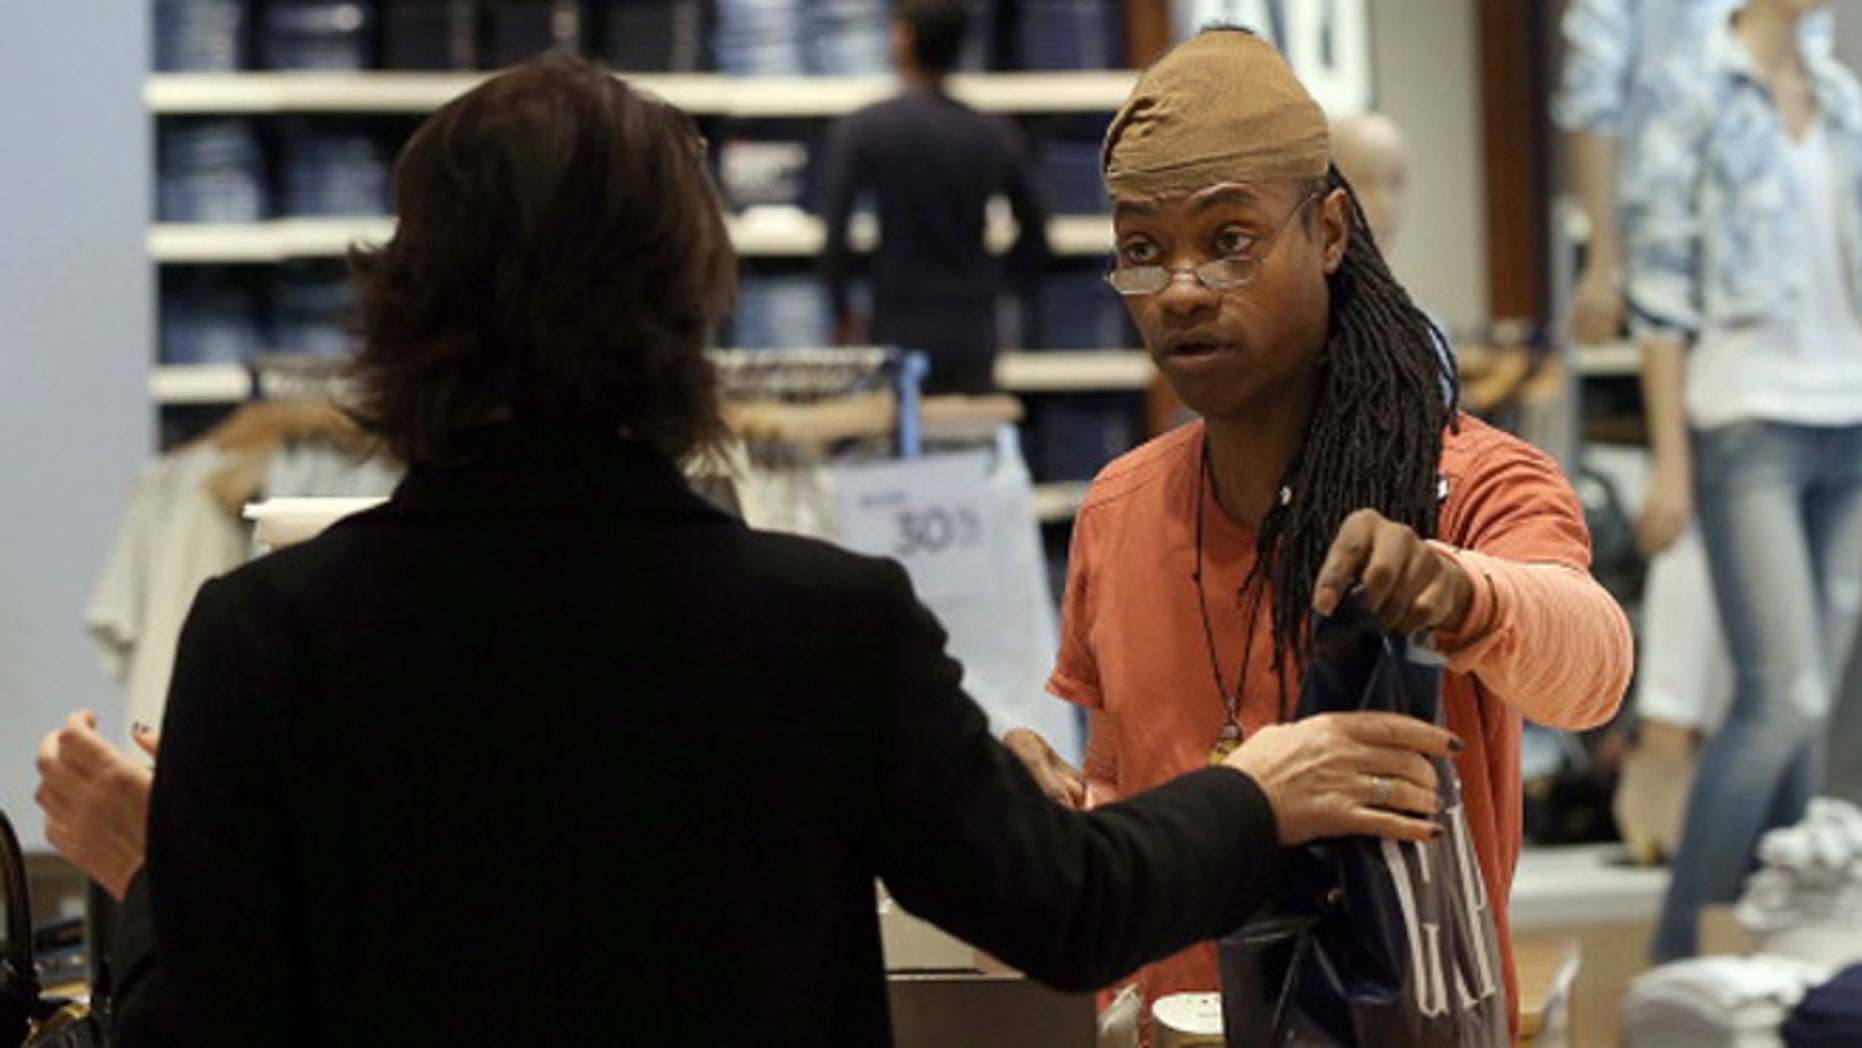 SAN FRANCISCO, CA - FEBRUARY 20:  Gap employee Ni'Jean Gibson helps a customer at a Gap store on February 20, 2014 in San Francisco, California.  Gap Inc. announced that they will raise their minimum wage for U.S. employees to nine dollars in June of 2014 and to $10 by June of 2015.  (Photo by Justin Sullivan/Getty Images)